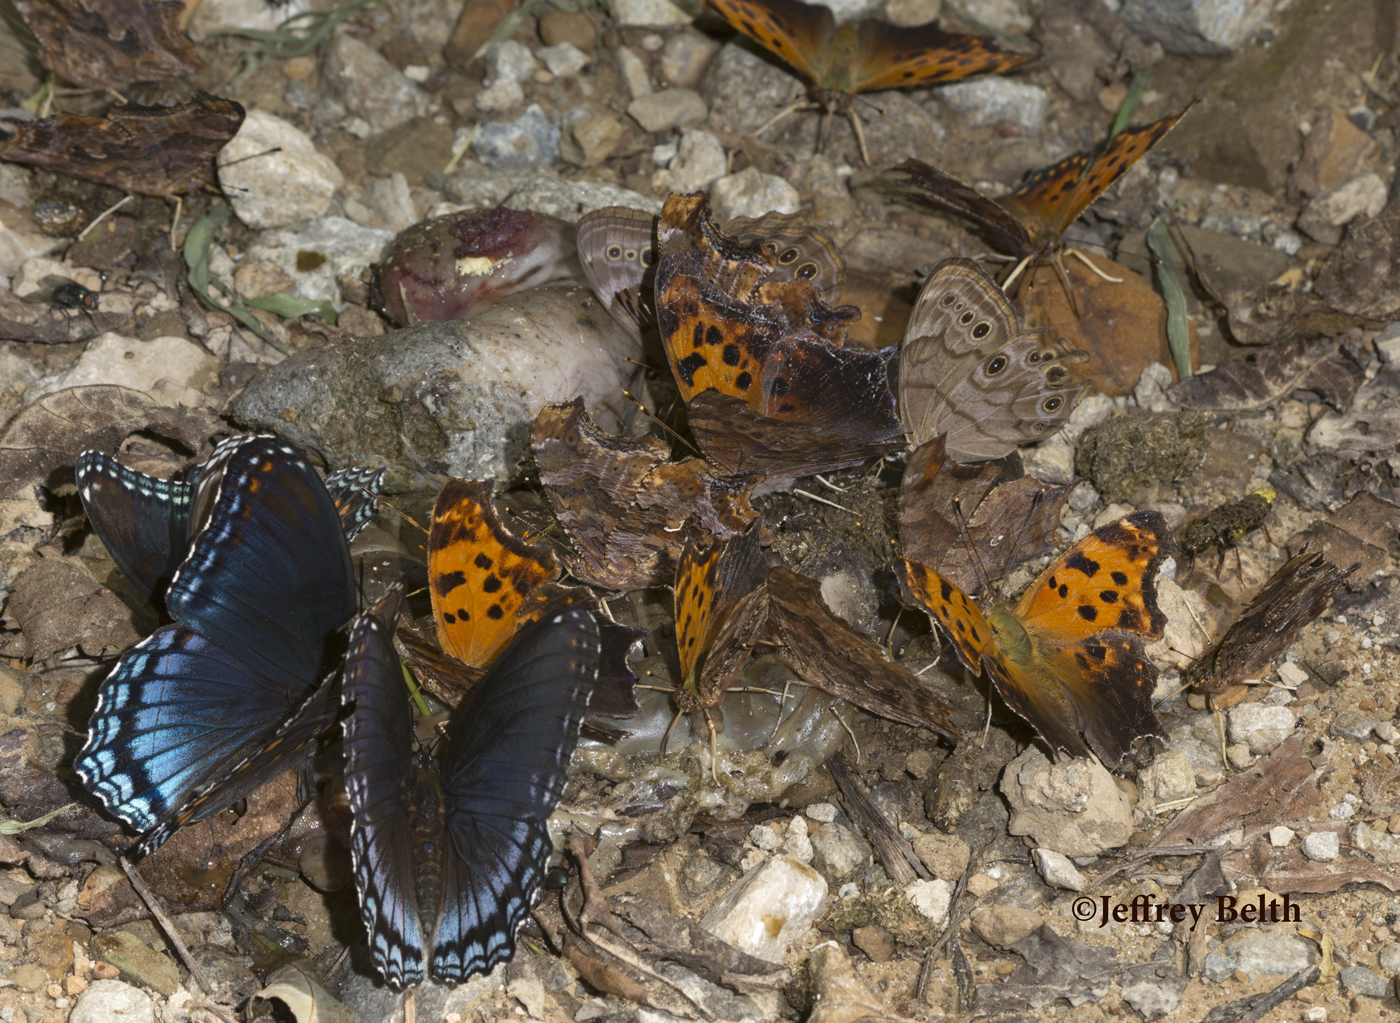 A gathering of butterflies on carrion. Left to right: Red-spotted Purple, Question Mark, Eastern Comma, and Northern Pearly-Eye. Also on far right is rove beetle.